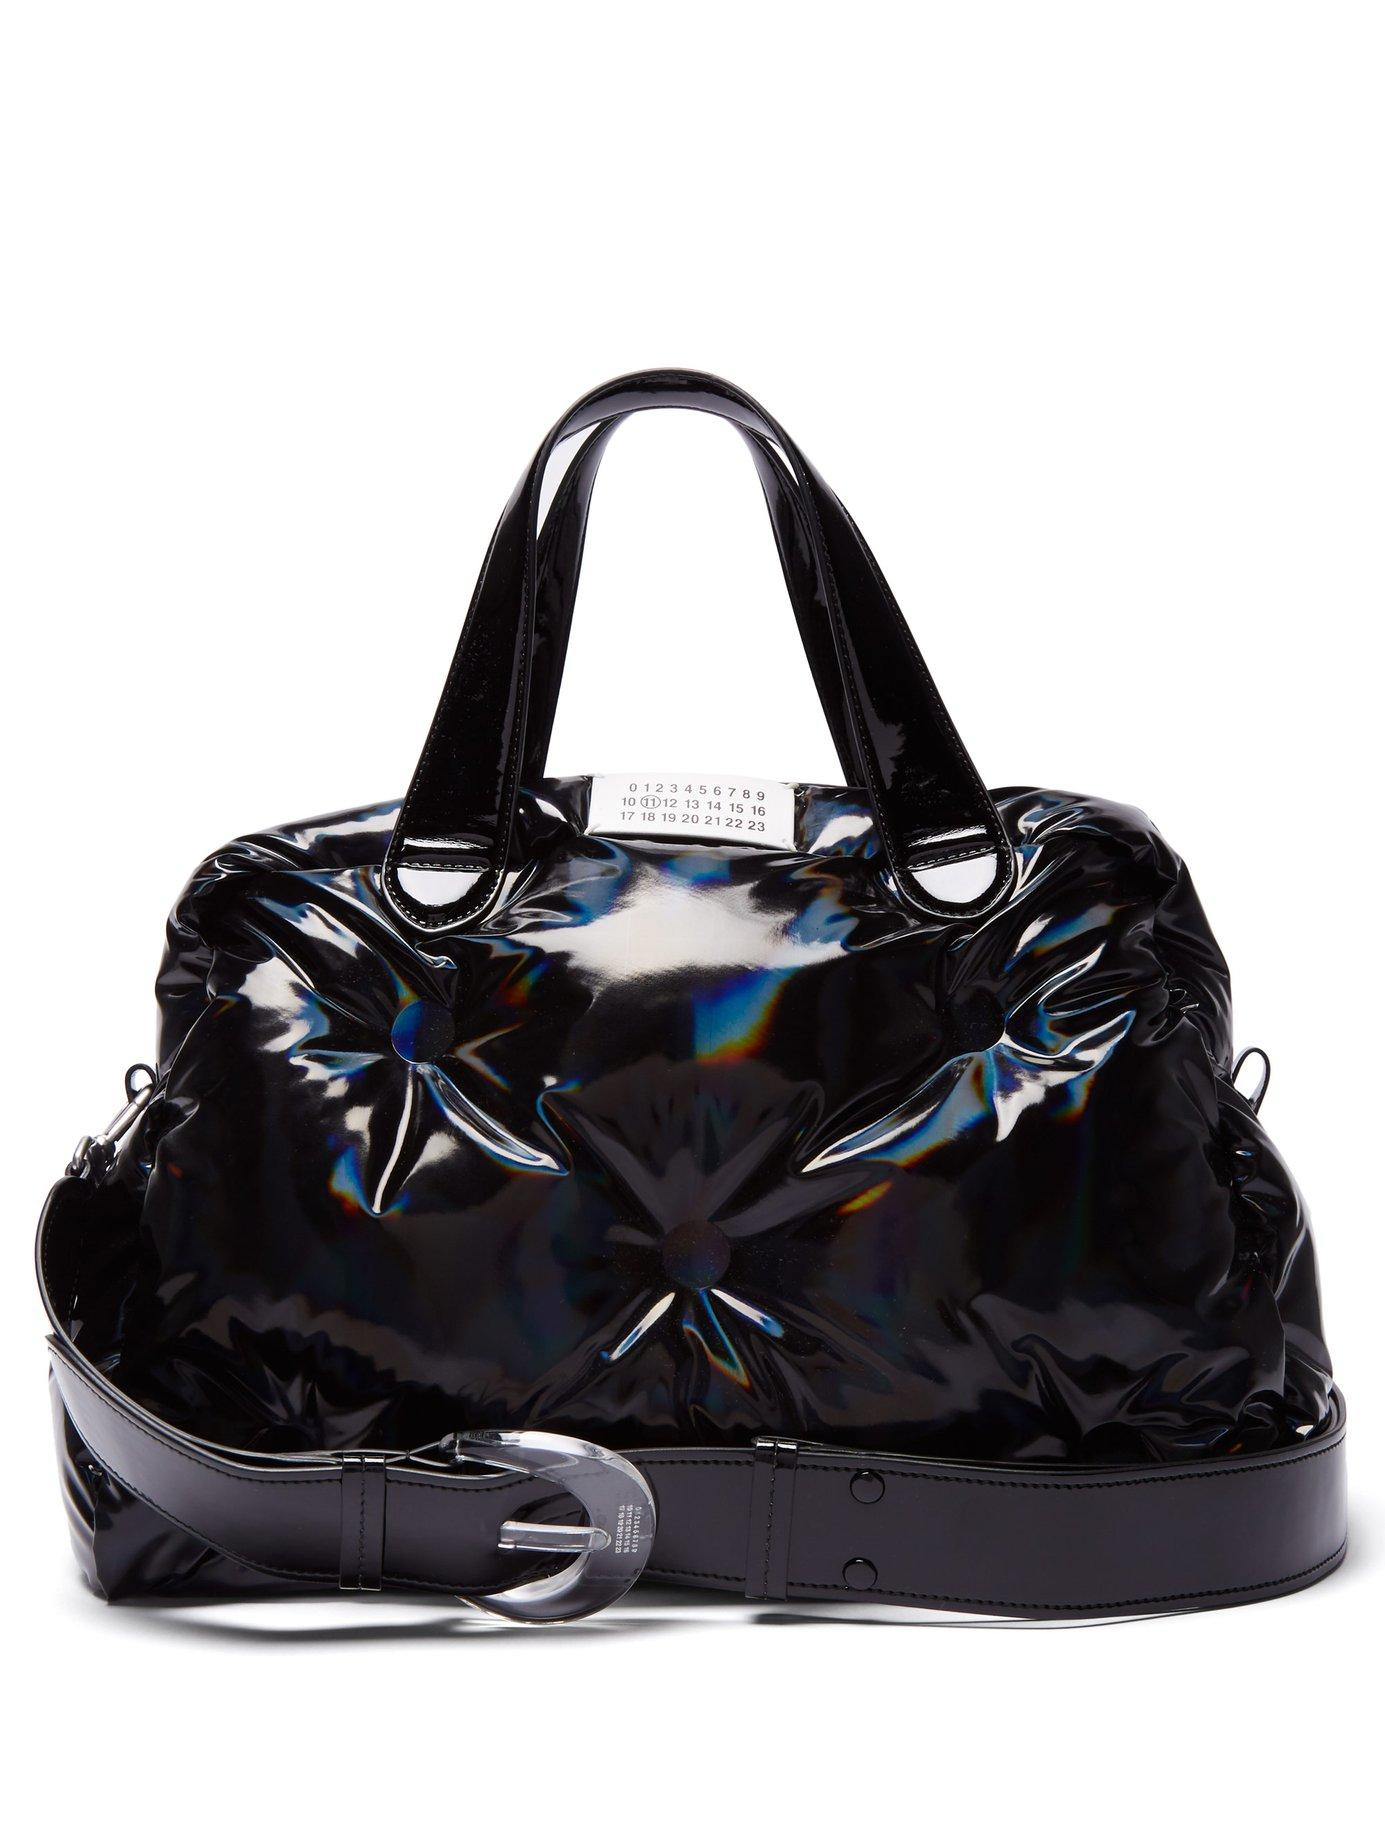 Lyst - Maison Margiela Glam Slam Holographic Pvc Bowling Bag in Black ef6a5db9b31